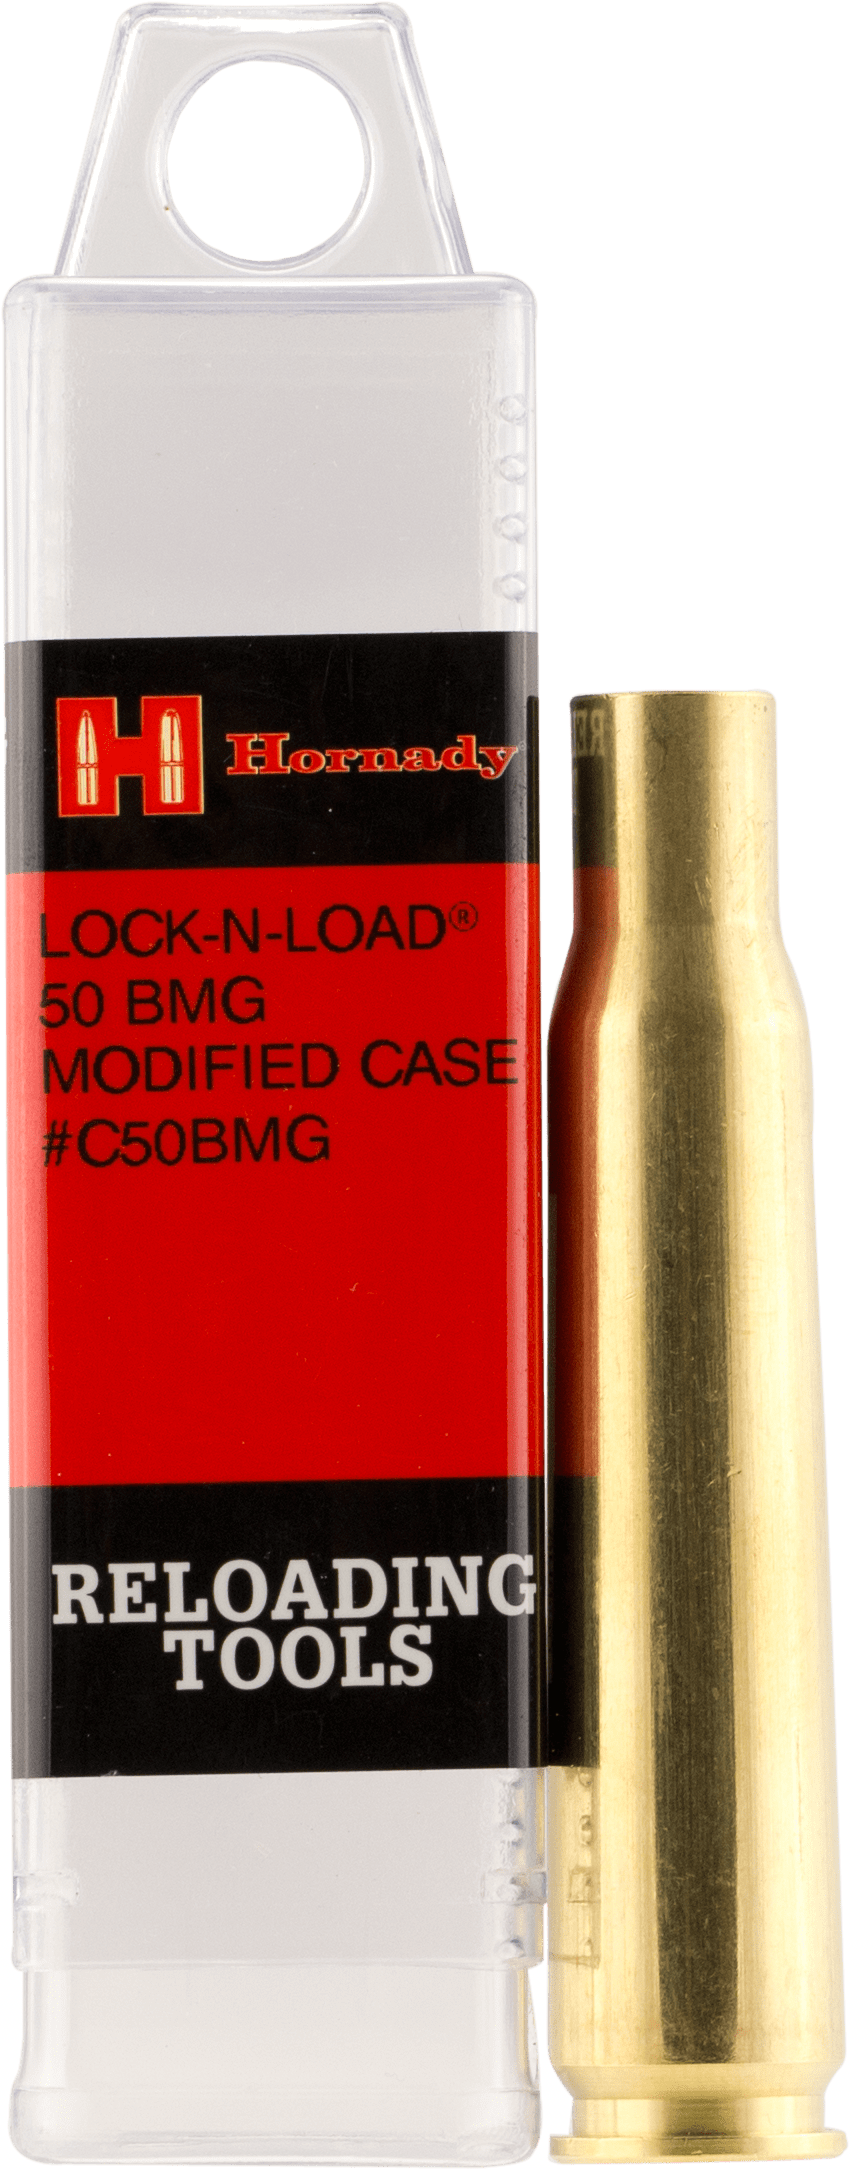 Download Hornady - Bullet PNG Image with No Background - PNGkey com